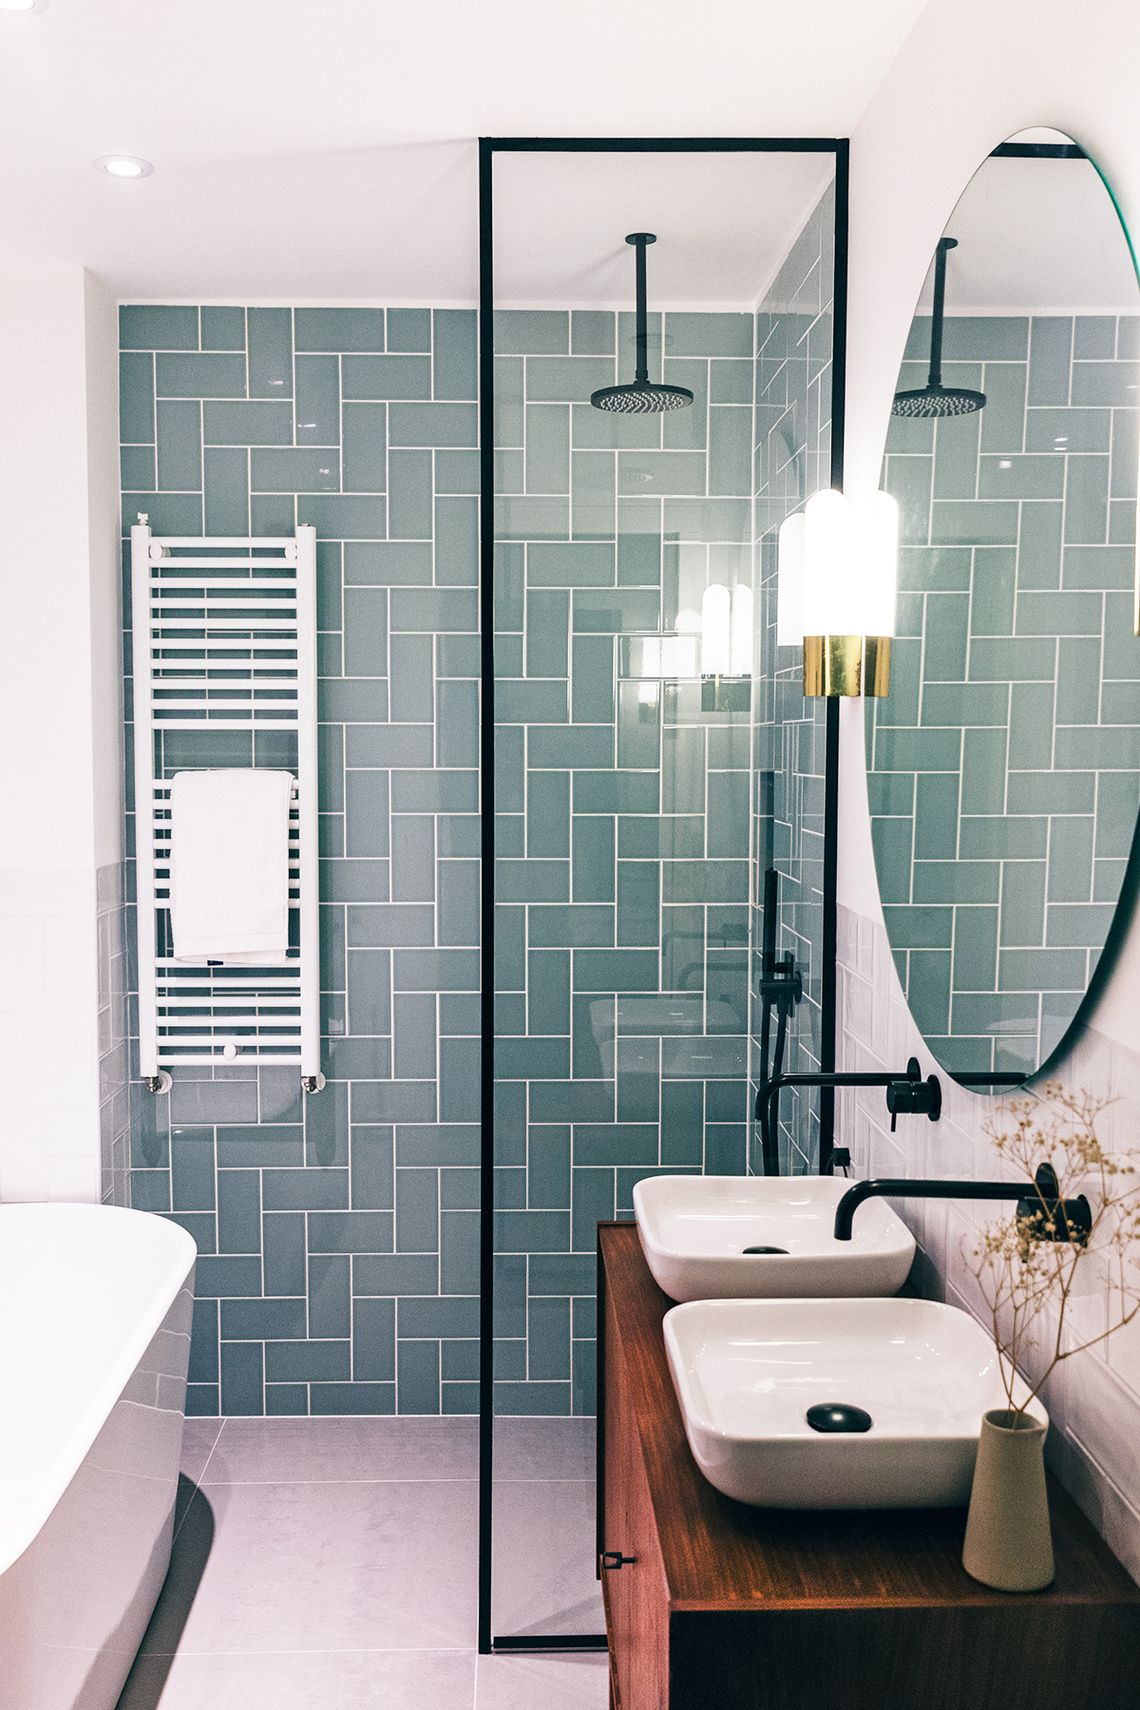 Pin By Heather Corry On Home Ideas | Pinterest | Interiors, House And Bath